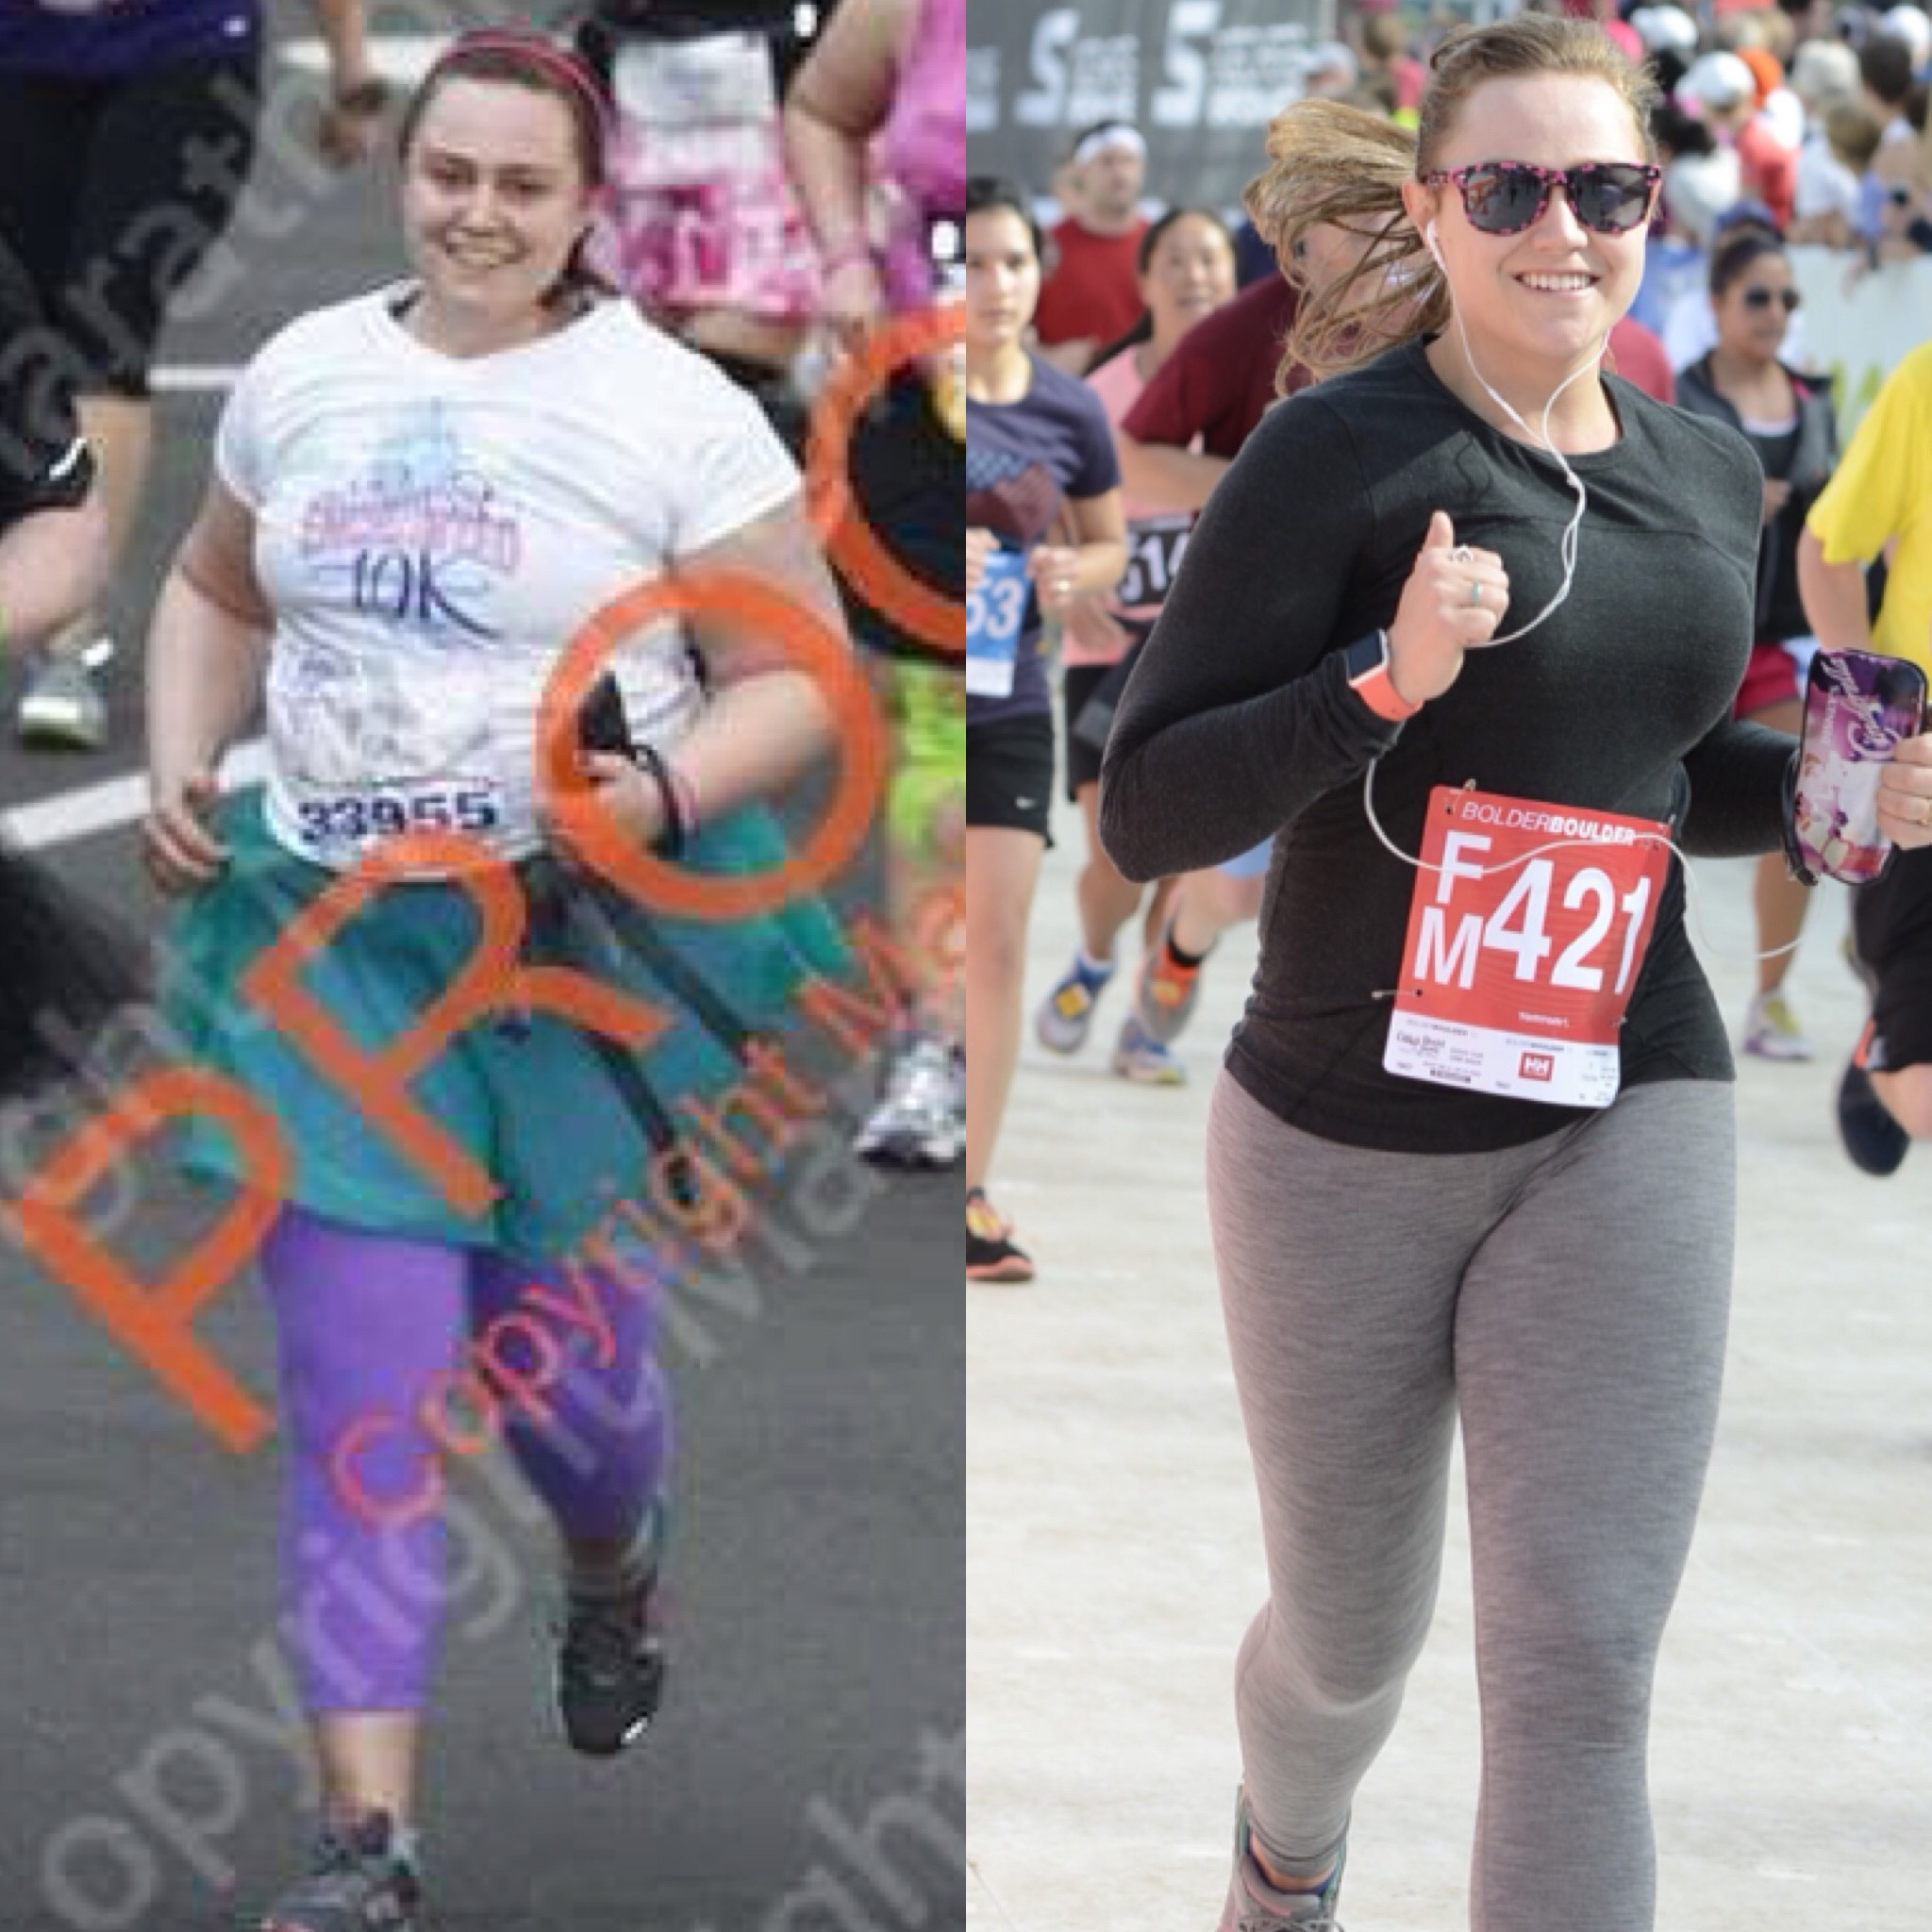 Feb 2014 Enchanted 10k in Disney World on the left. May 2015 BolderBoulder 10k on the right.